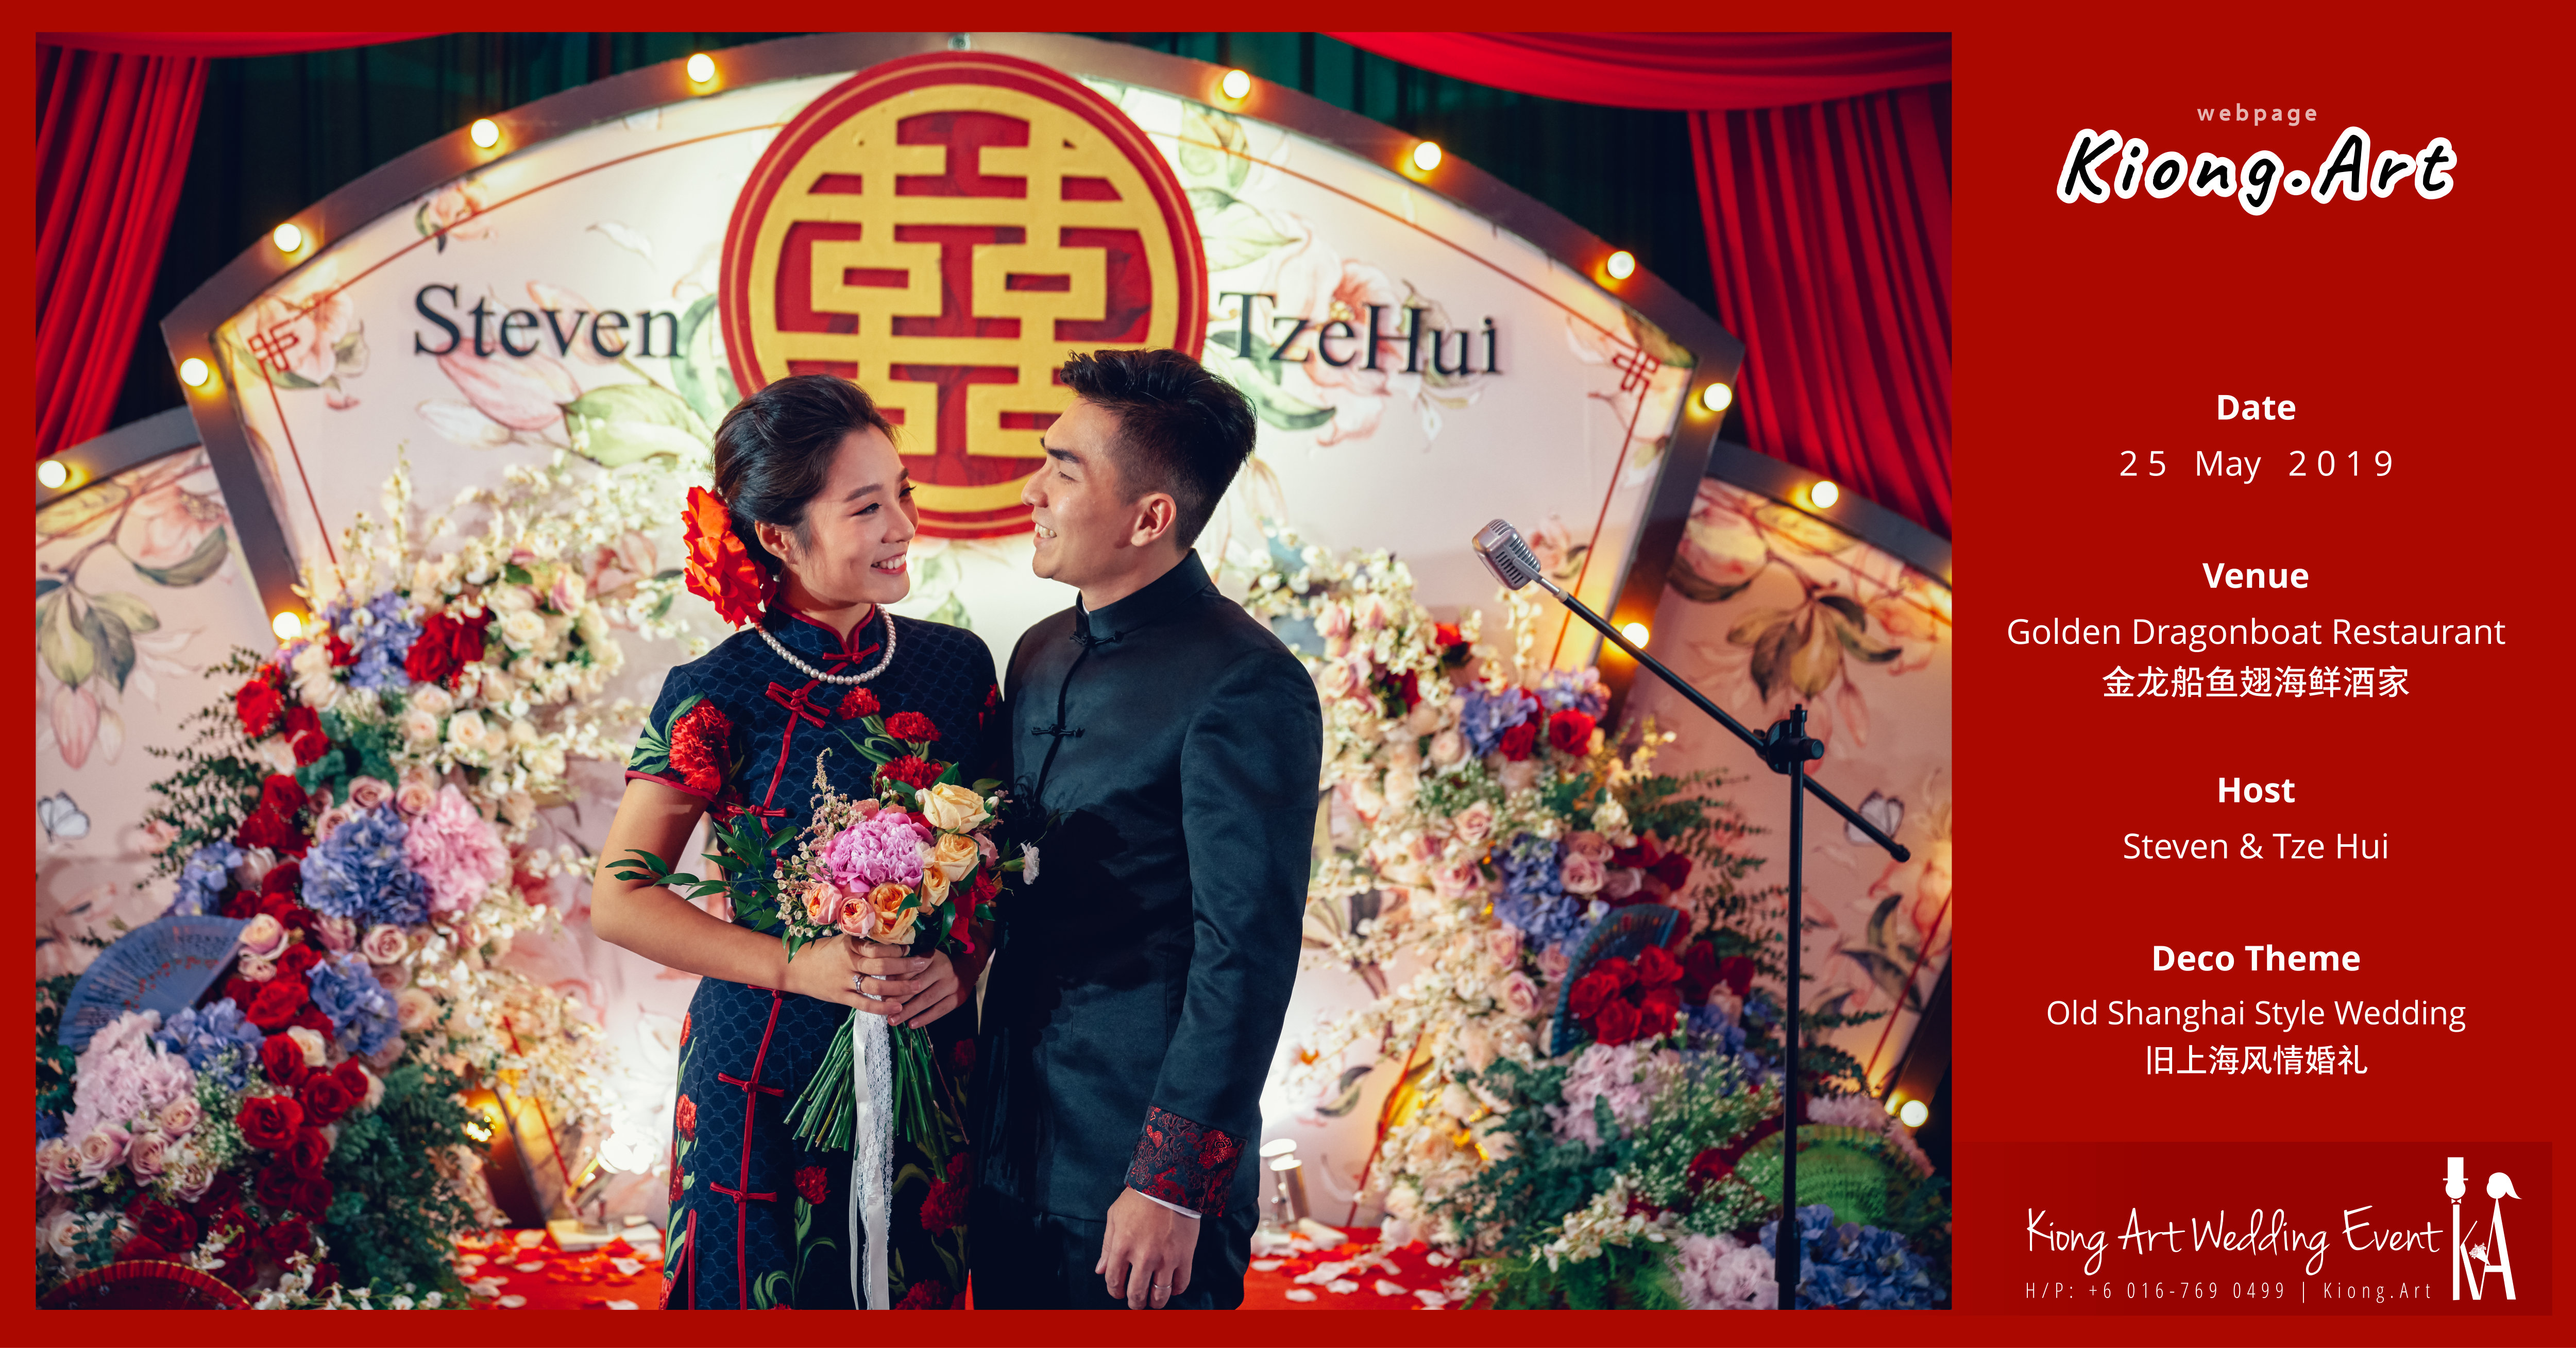 Kuala Lumpur Wedding Deco Decoration Kiong Art Wedding Deco Old Shanghai Style Wedding 旧上海风情婚礼 Steven and Tze Hui at Golden Dragonboat Restaurant 金龙船鱼翅海鲜酒家 Malaysia A16-A00-003